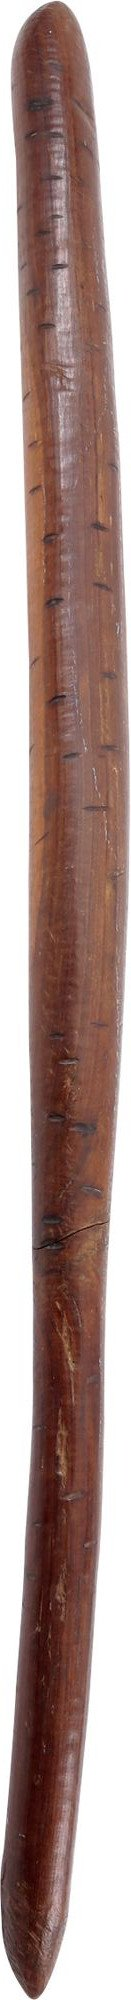 Australian Aborigine Throwing Club - Product